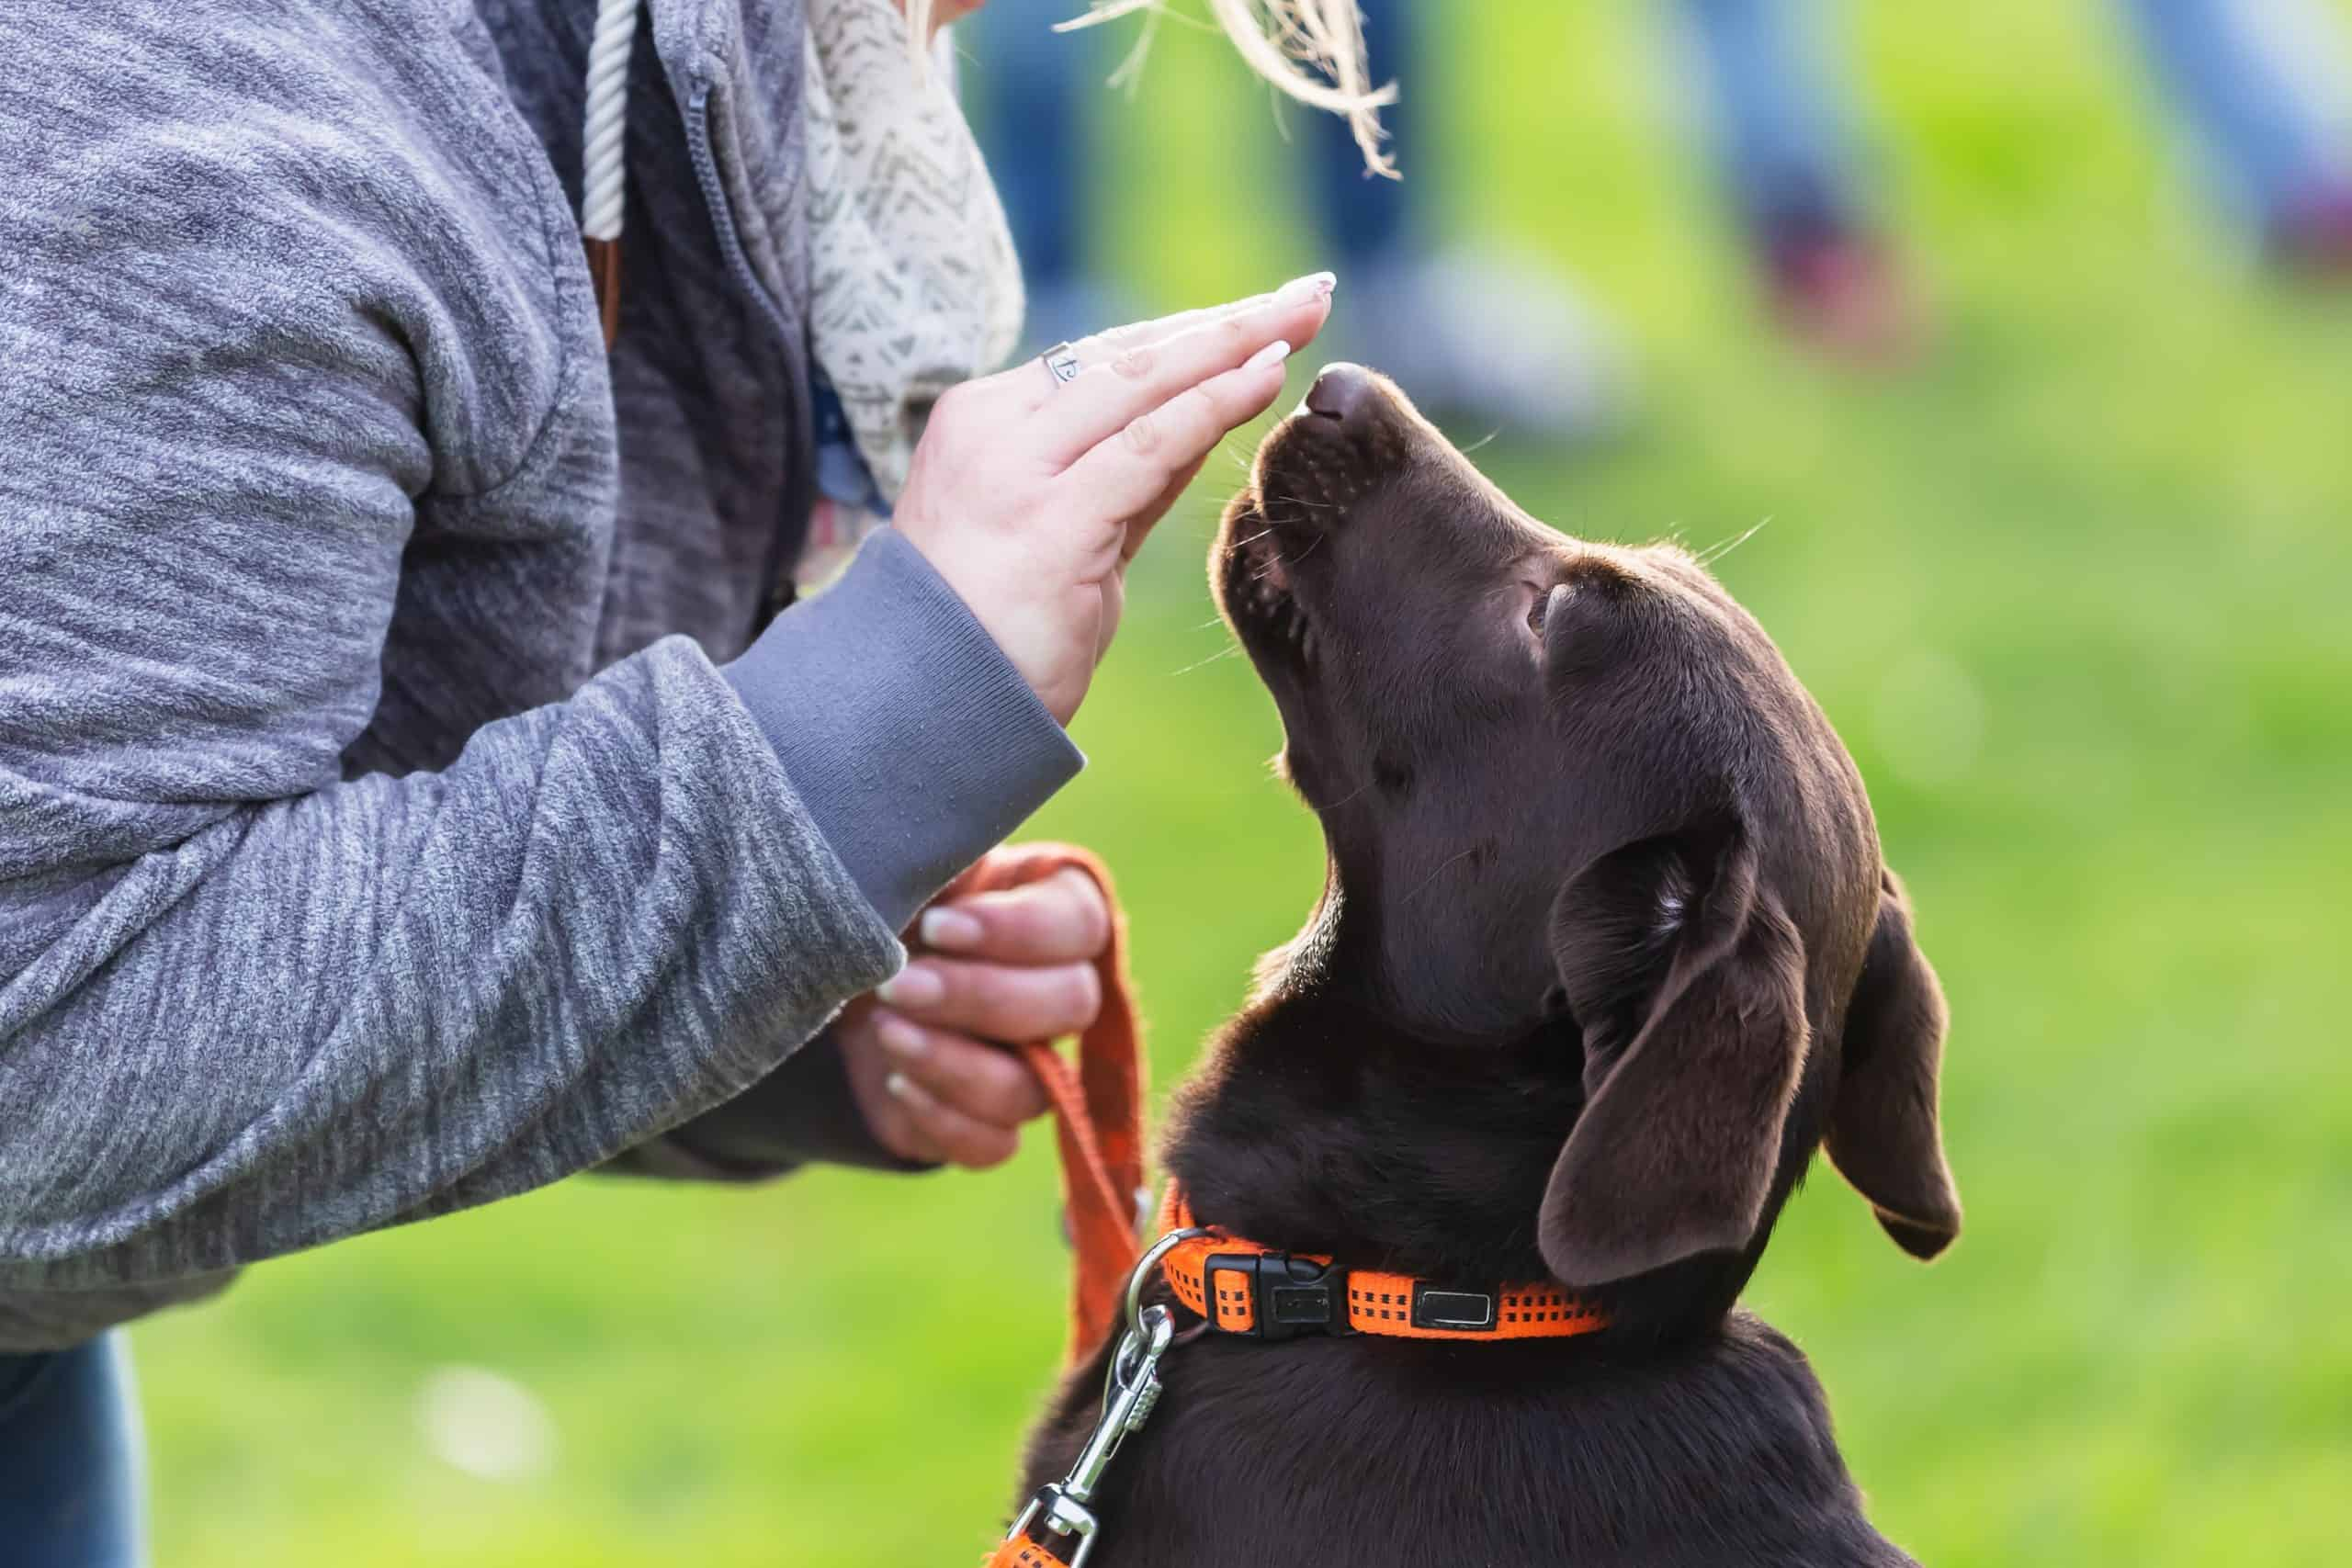 Woman trains chocolate Labrador Retriever. Keep your dog safe by teaching leave it, preventing dog fights, protecting your dog from heatstroke, and by feeding a healthy diet.